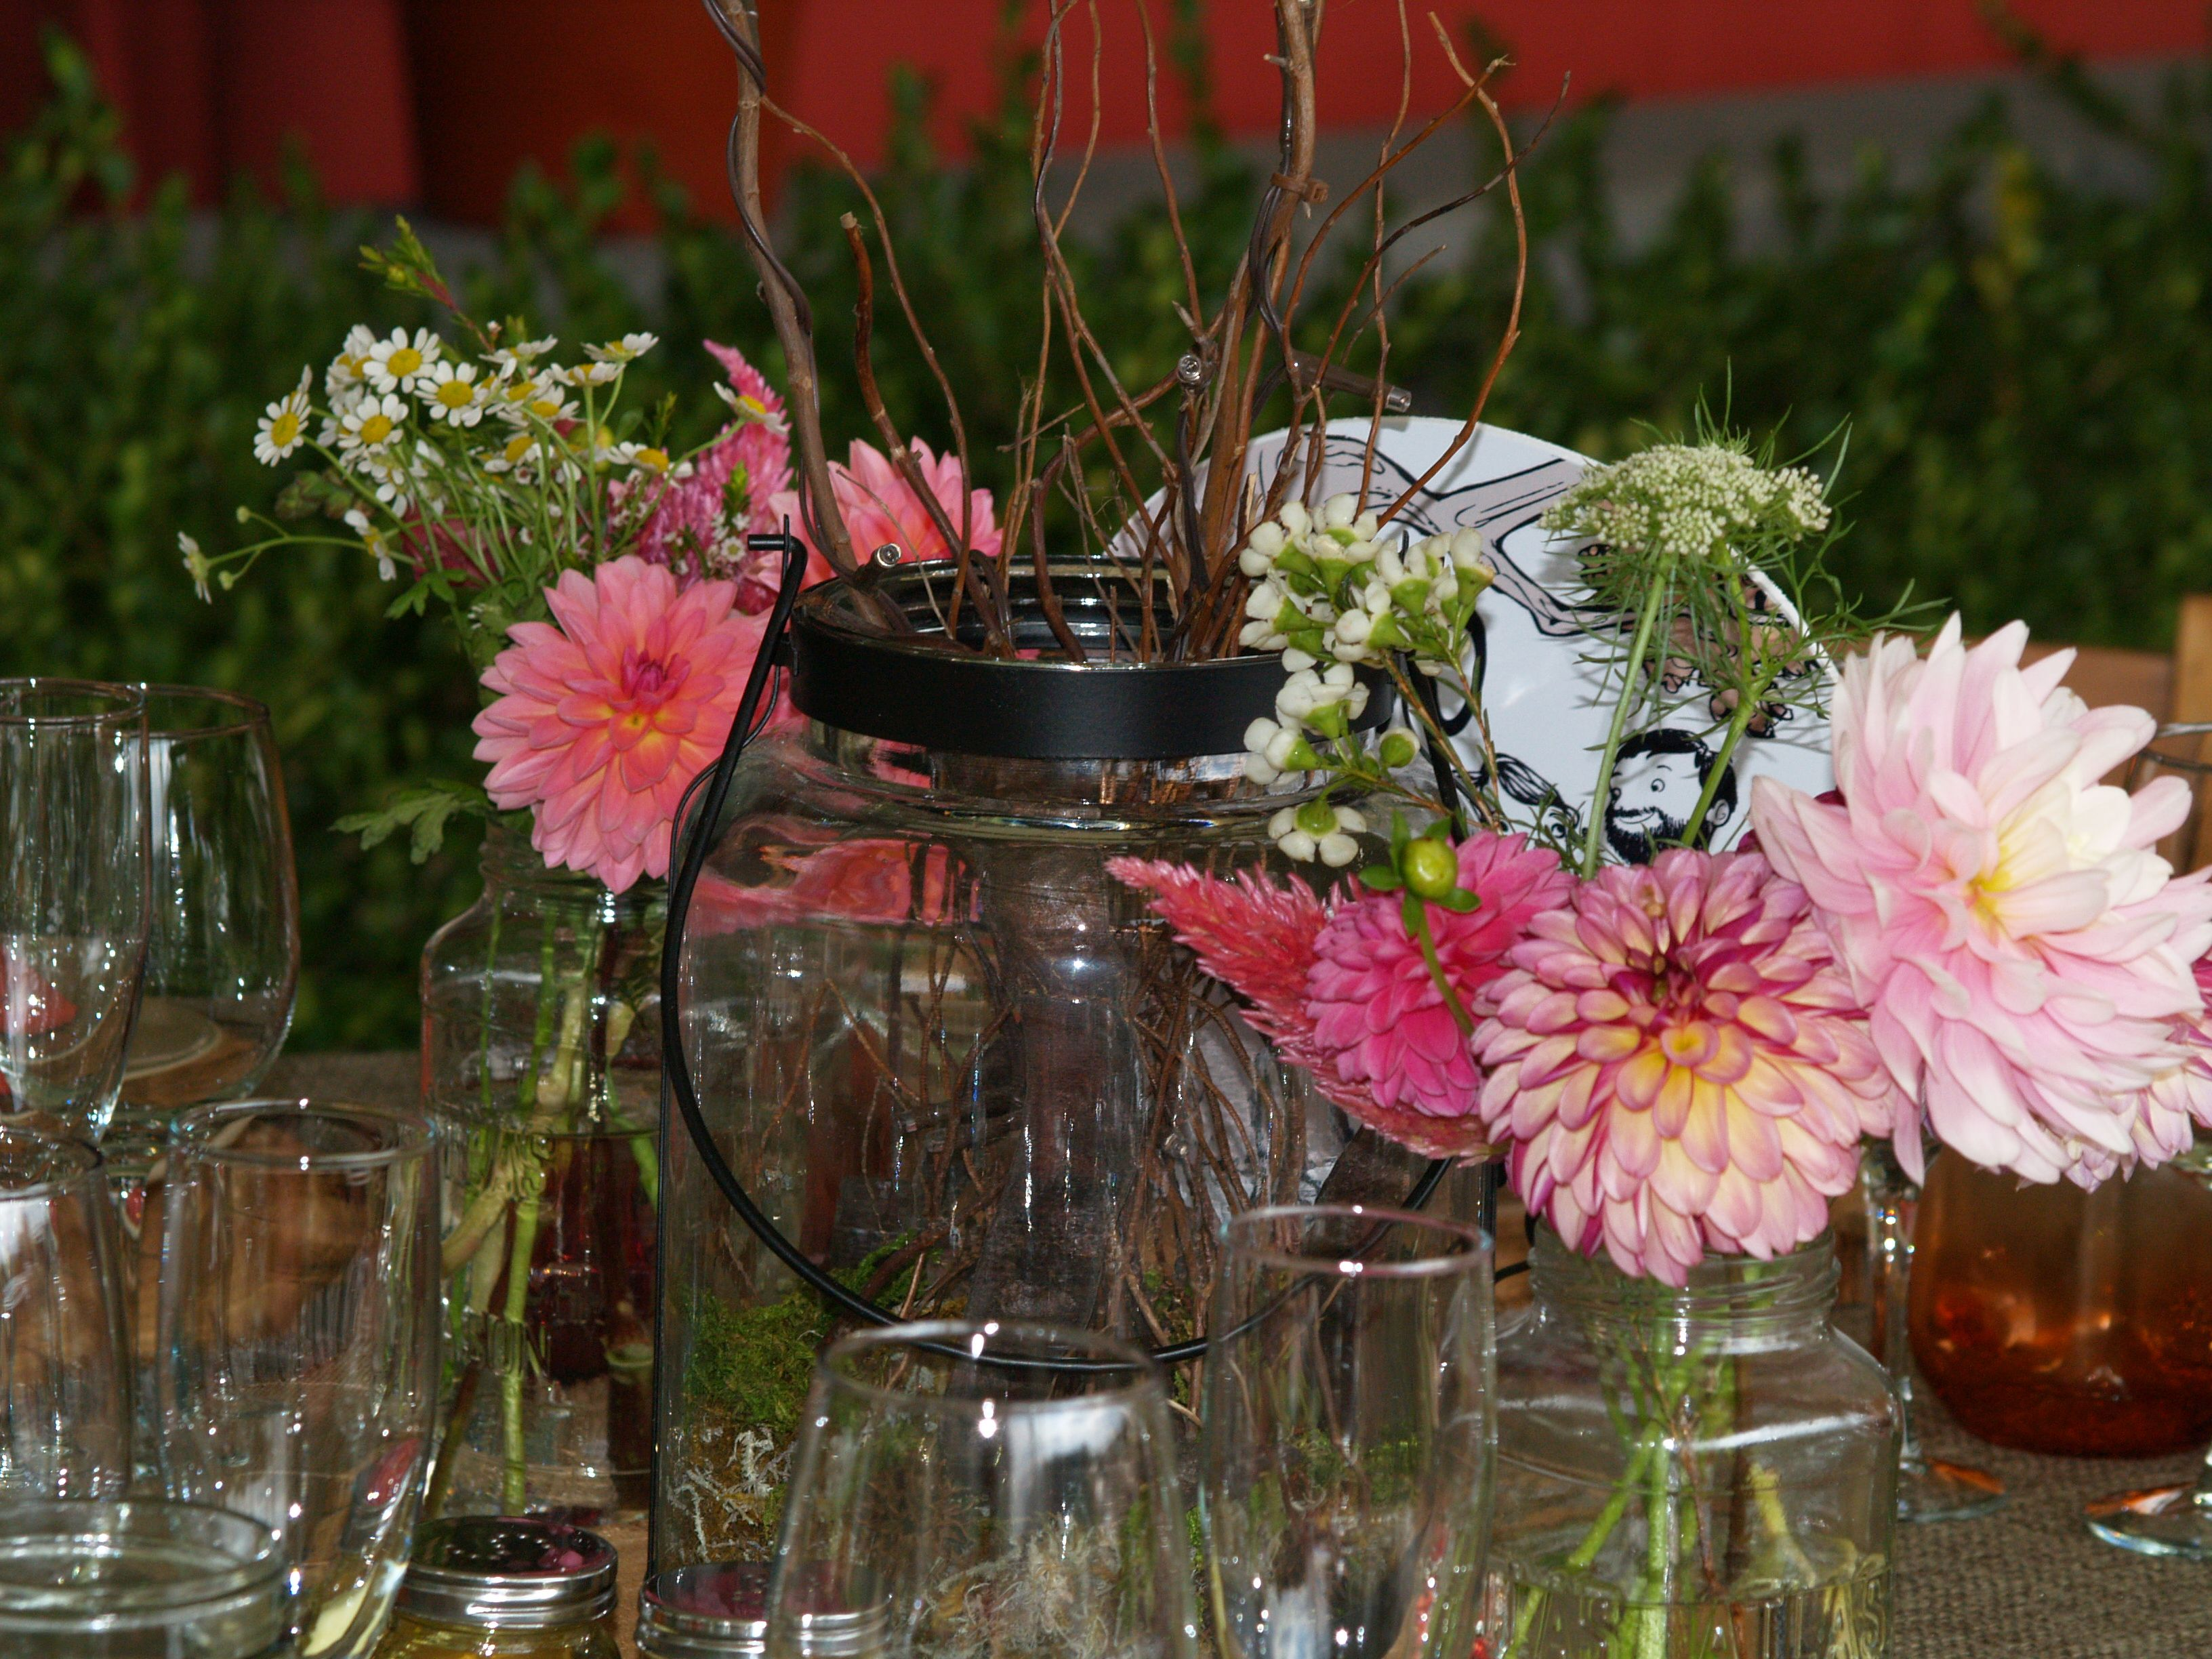 Mason jar centerpieces with dahlias and field grown flowers